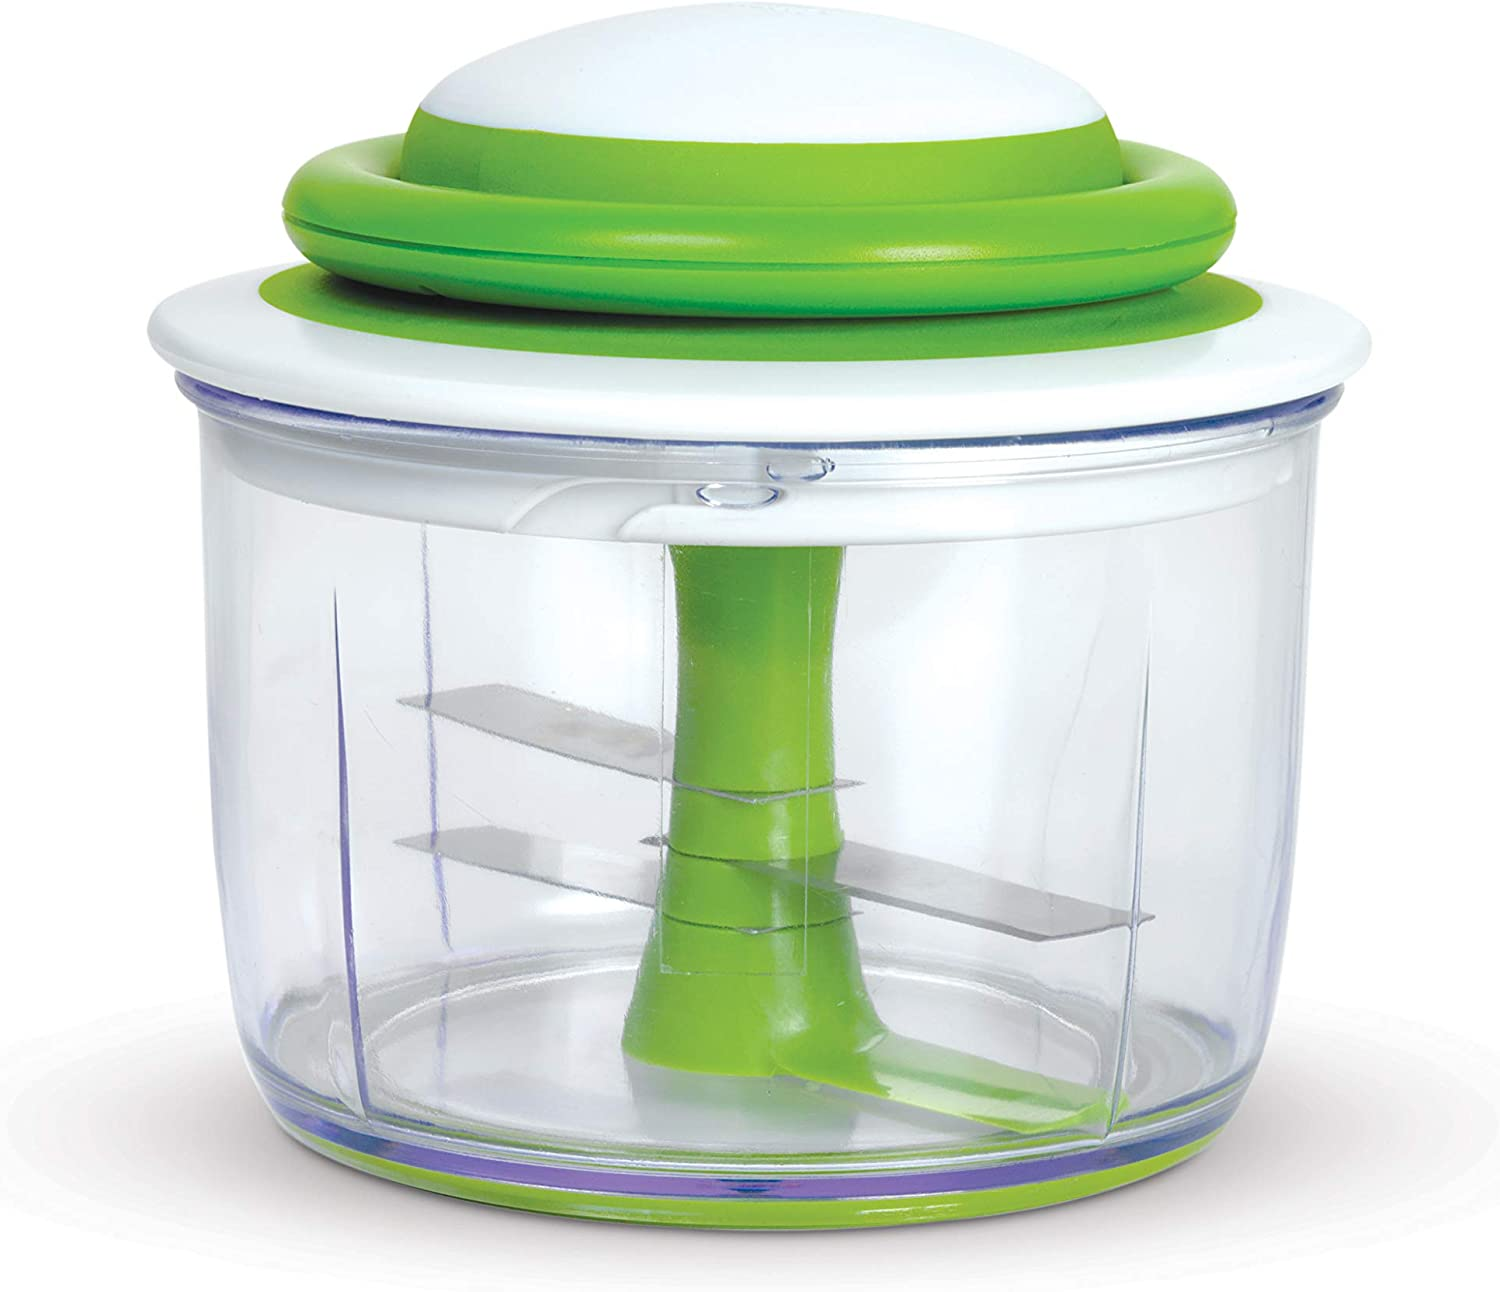 Chef'n VeggiChop Hand-Powered Food Chopper (Arugula): Home & Kitchen